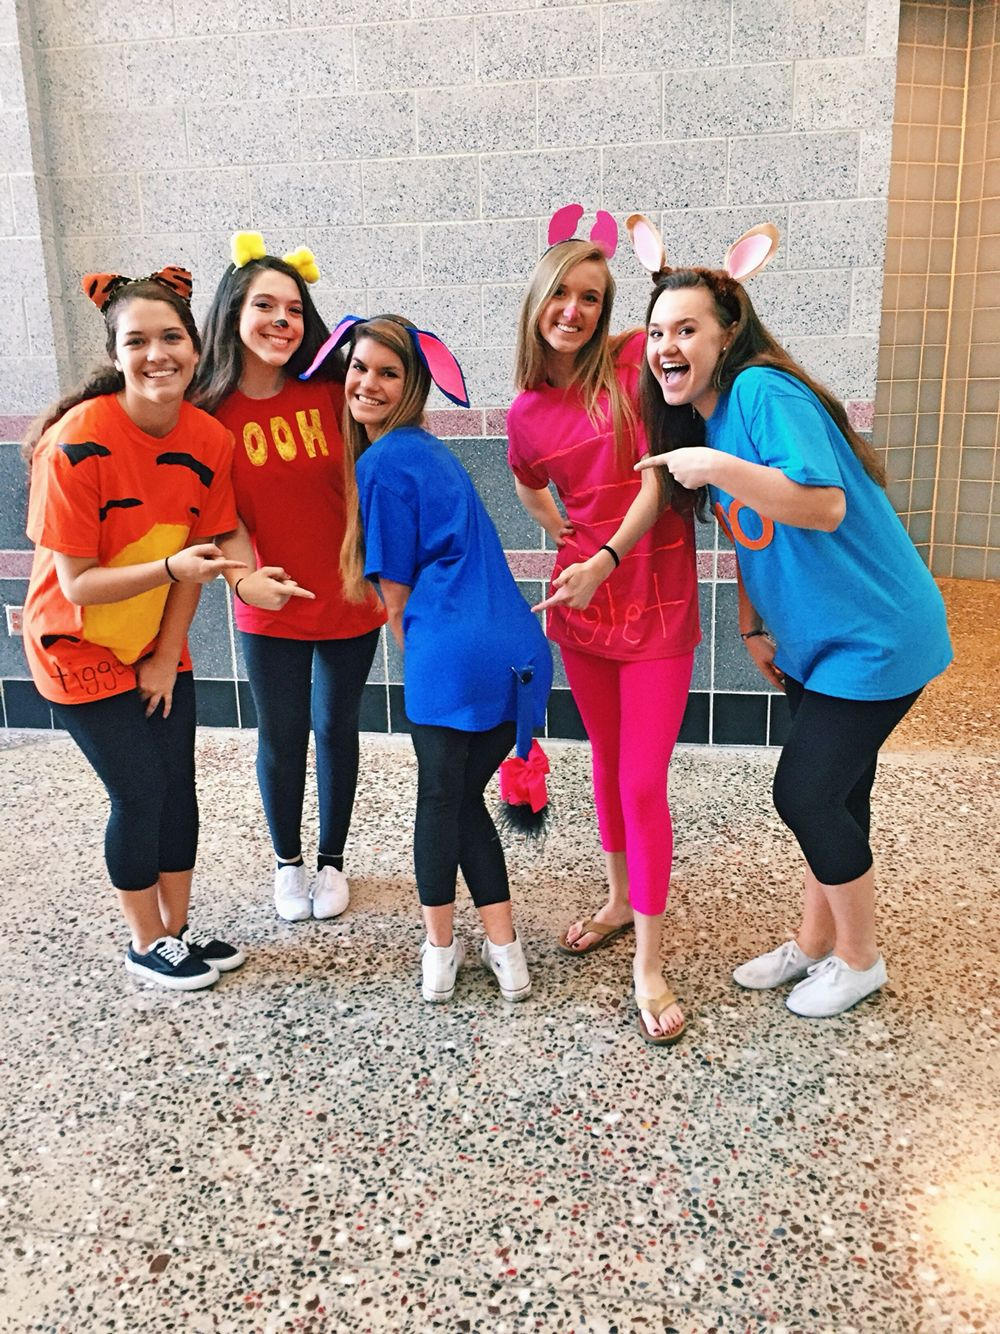 fb6cfc68344d Winnie the Pooh character costumes! Spirit week!